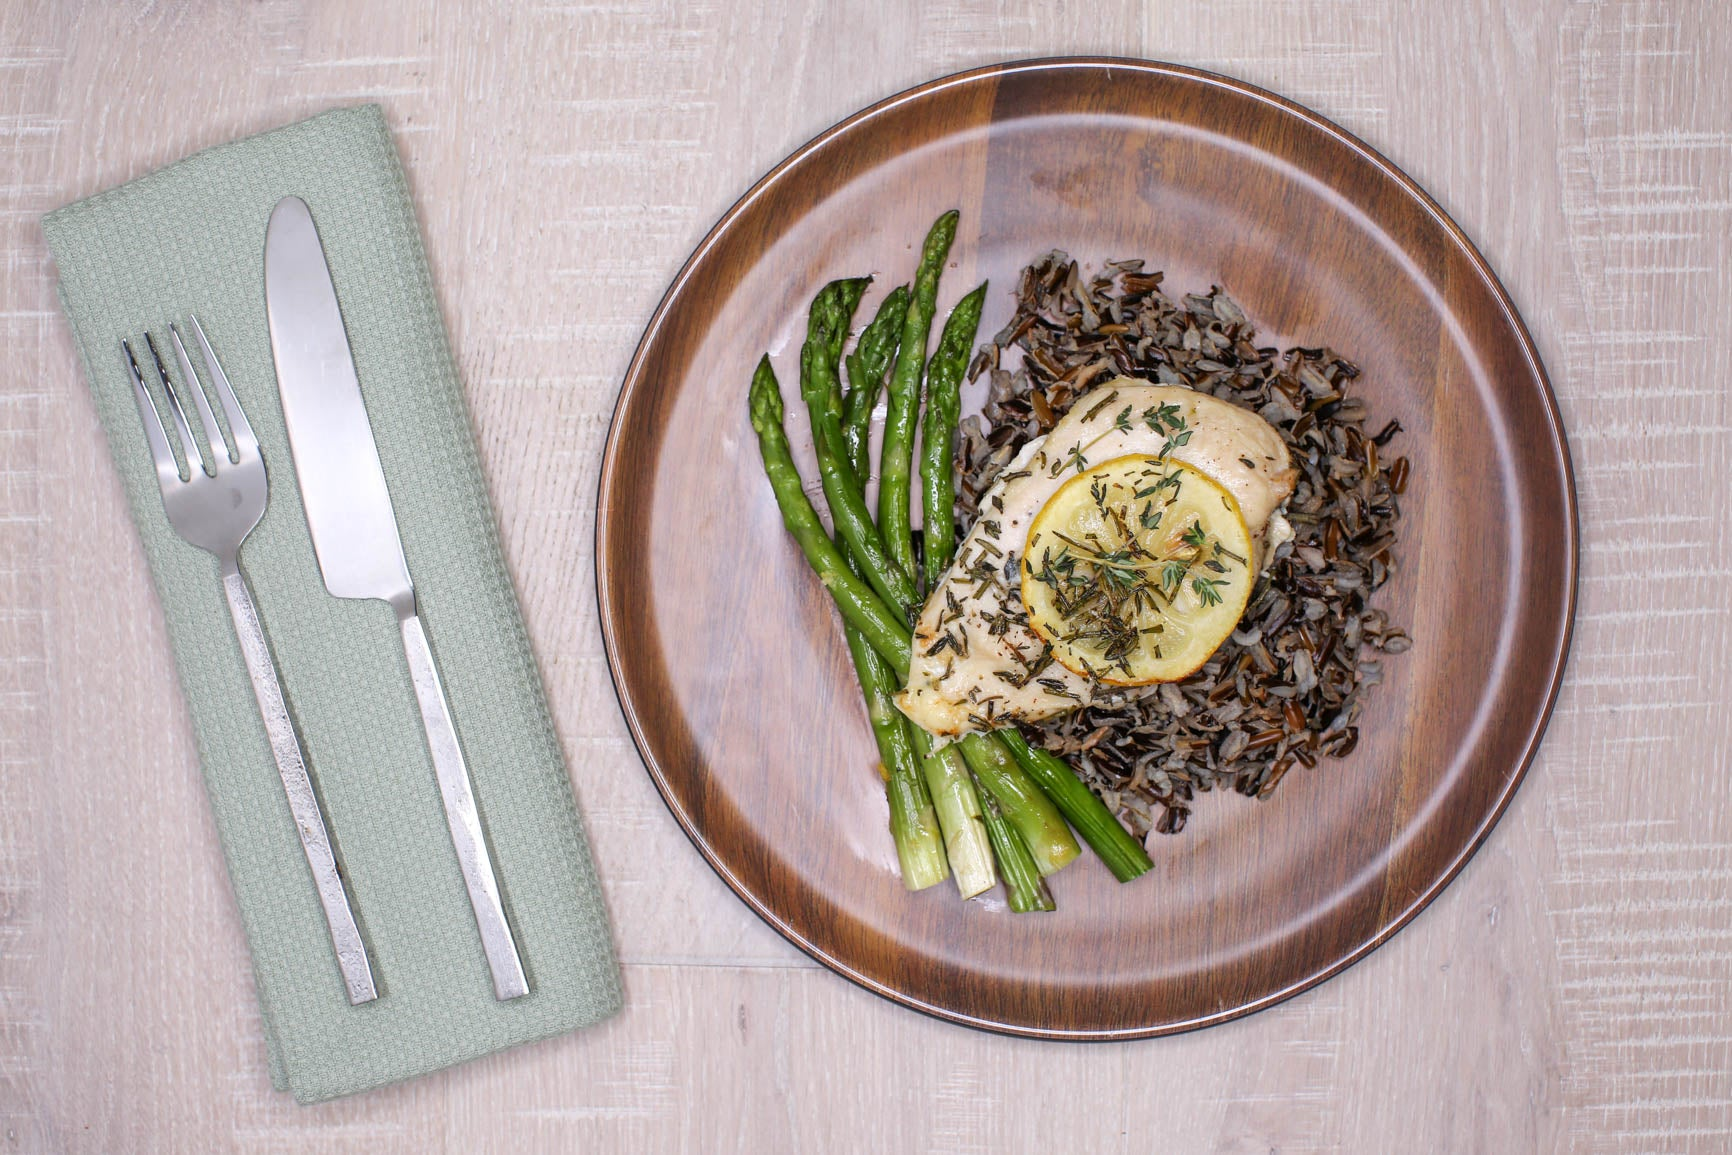 Lemon Herb Chicken w/ Wild Rice